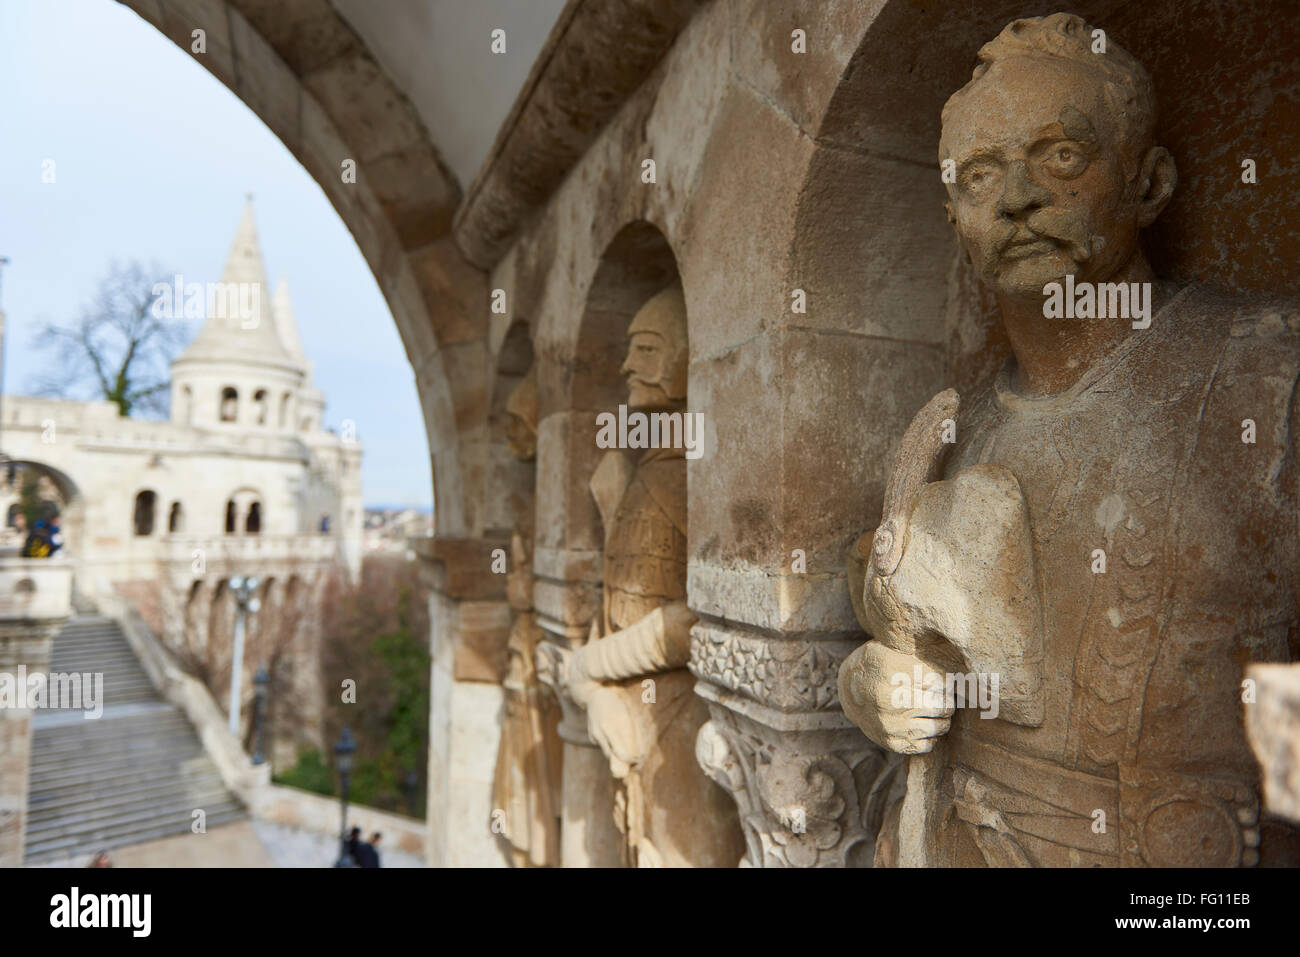 BUDAPEST, HUNGARY - FEBRUARY 02: Detail of stone soldier statue in one of the arches at Fisherman's Bastion, in Stock Photo